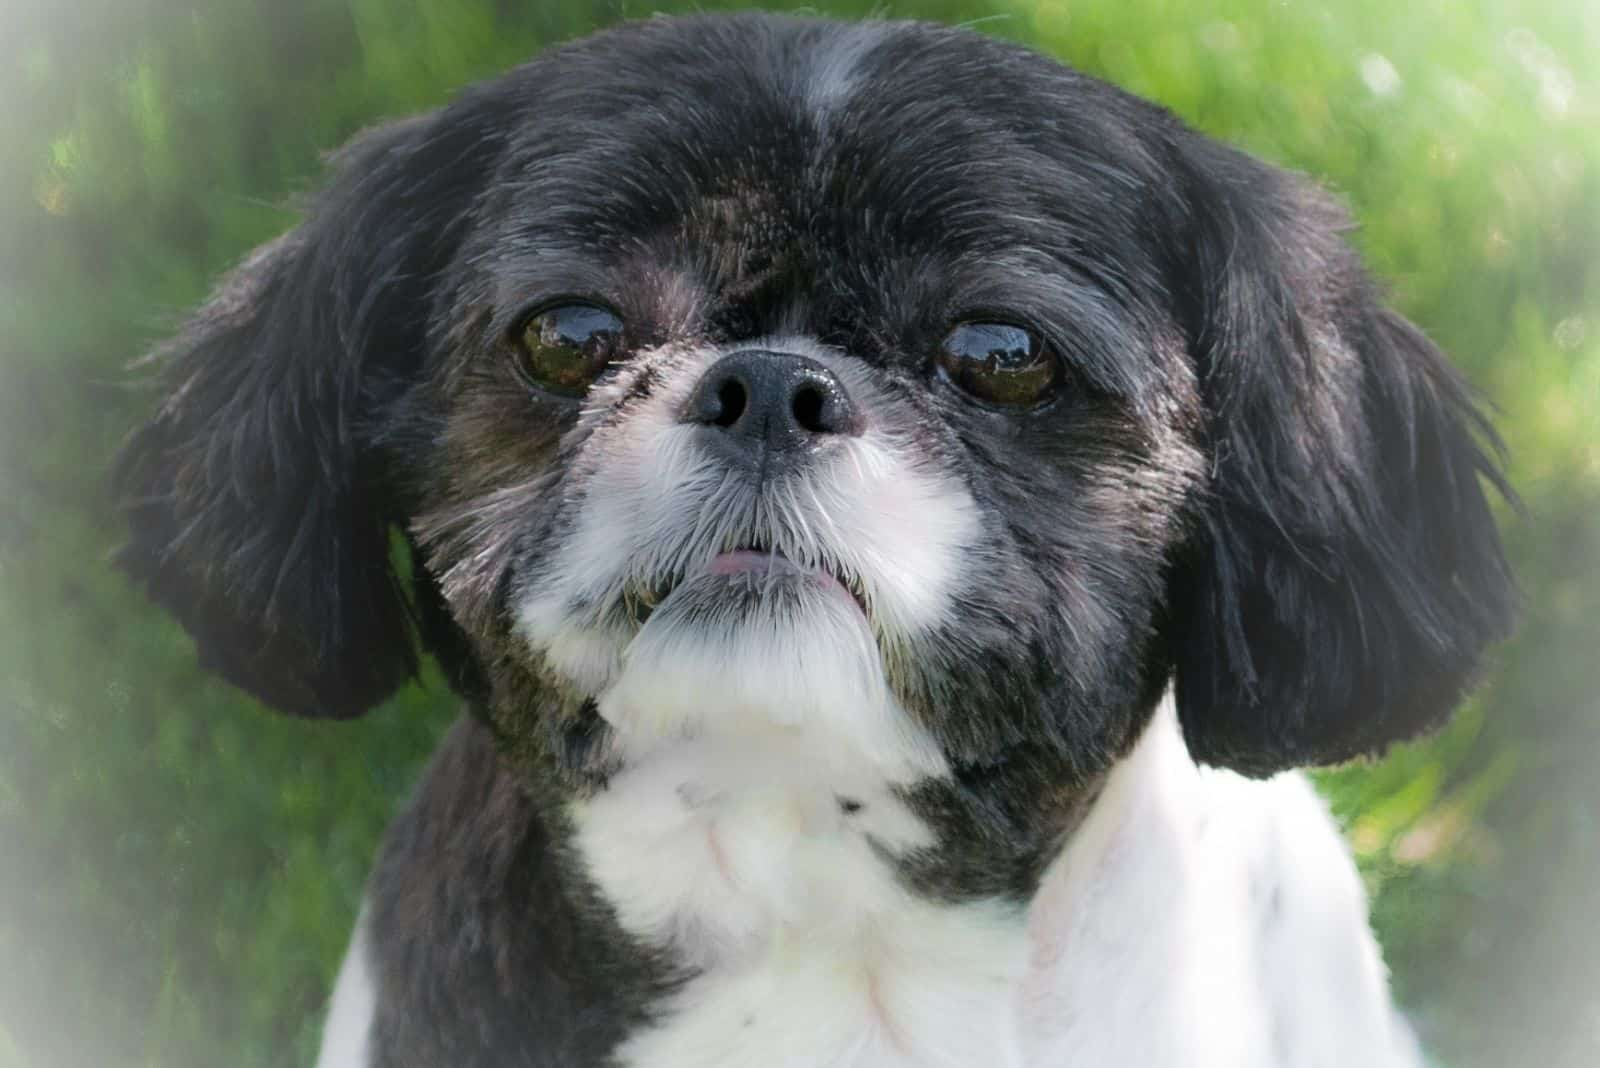 black white shih tzu puppy in close up image outdoors